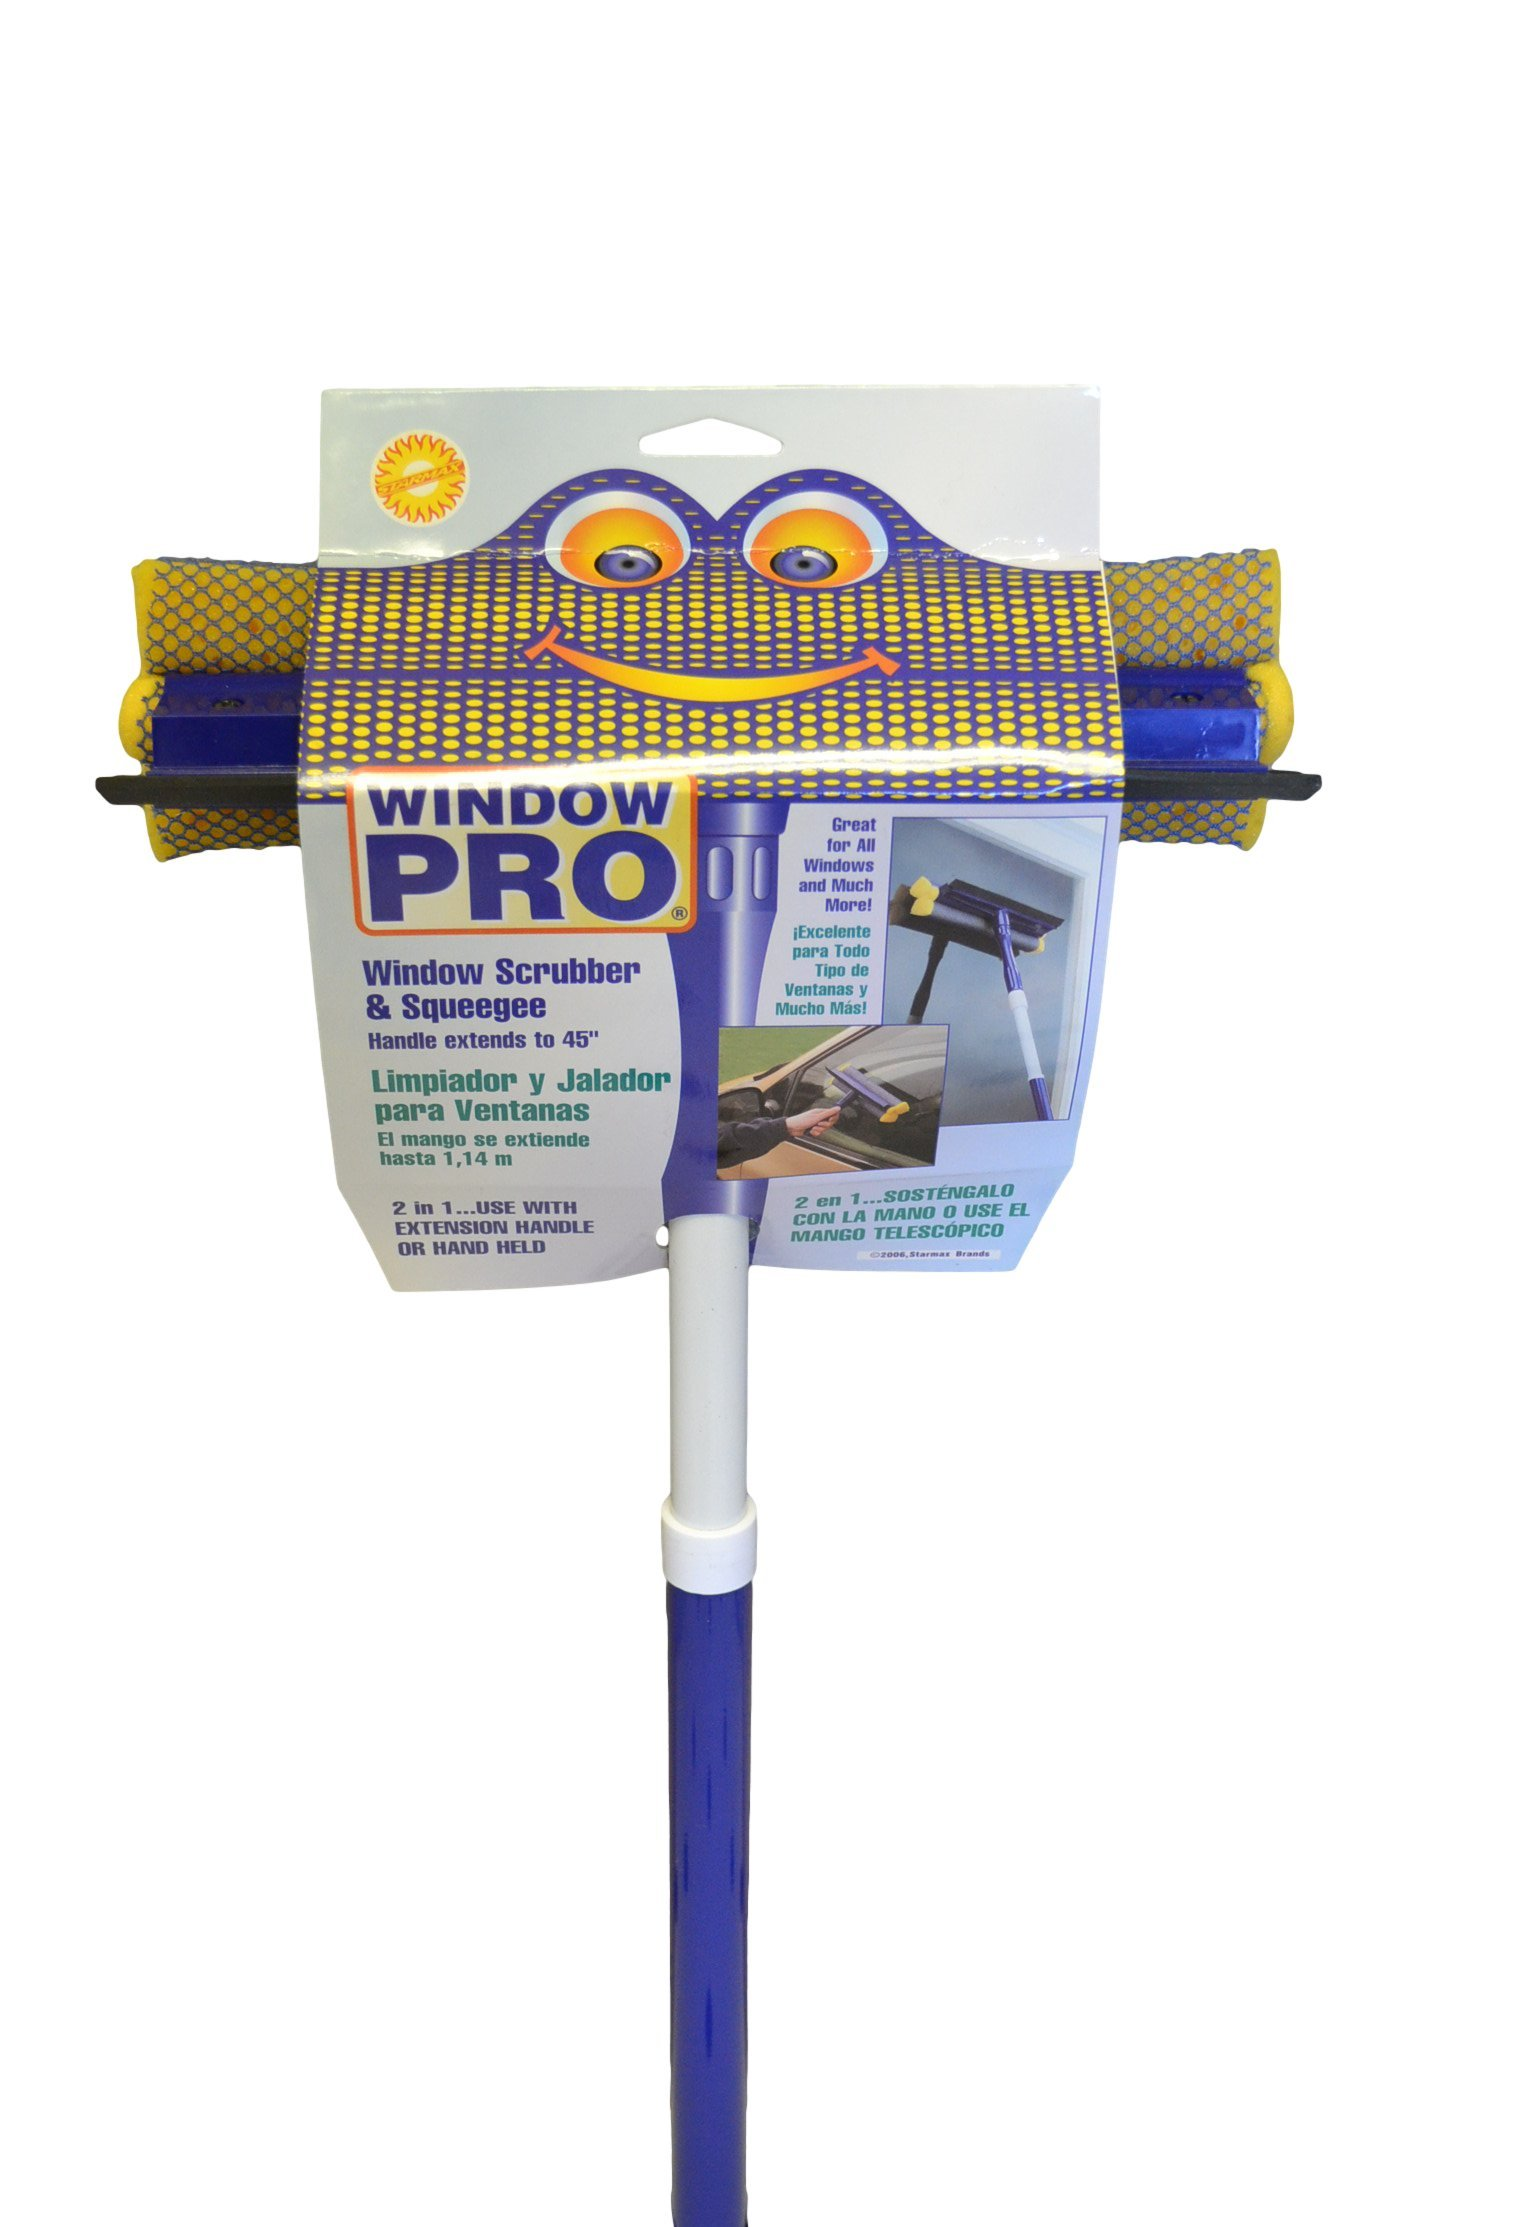 Starmax 9-1/2'' Window Pro Non-Scratch Scrubber and Squeegee with Metal Handle That Extends to 45'', Pack of 6, 380-26